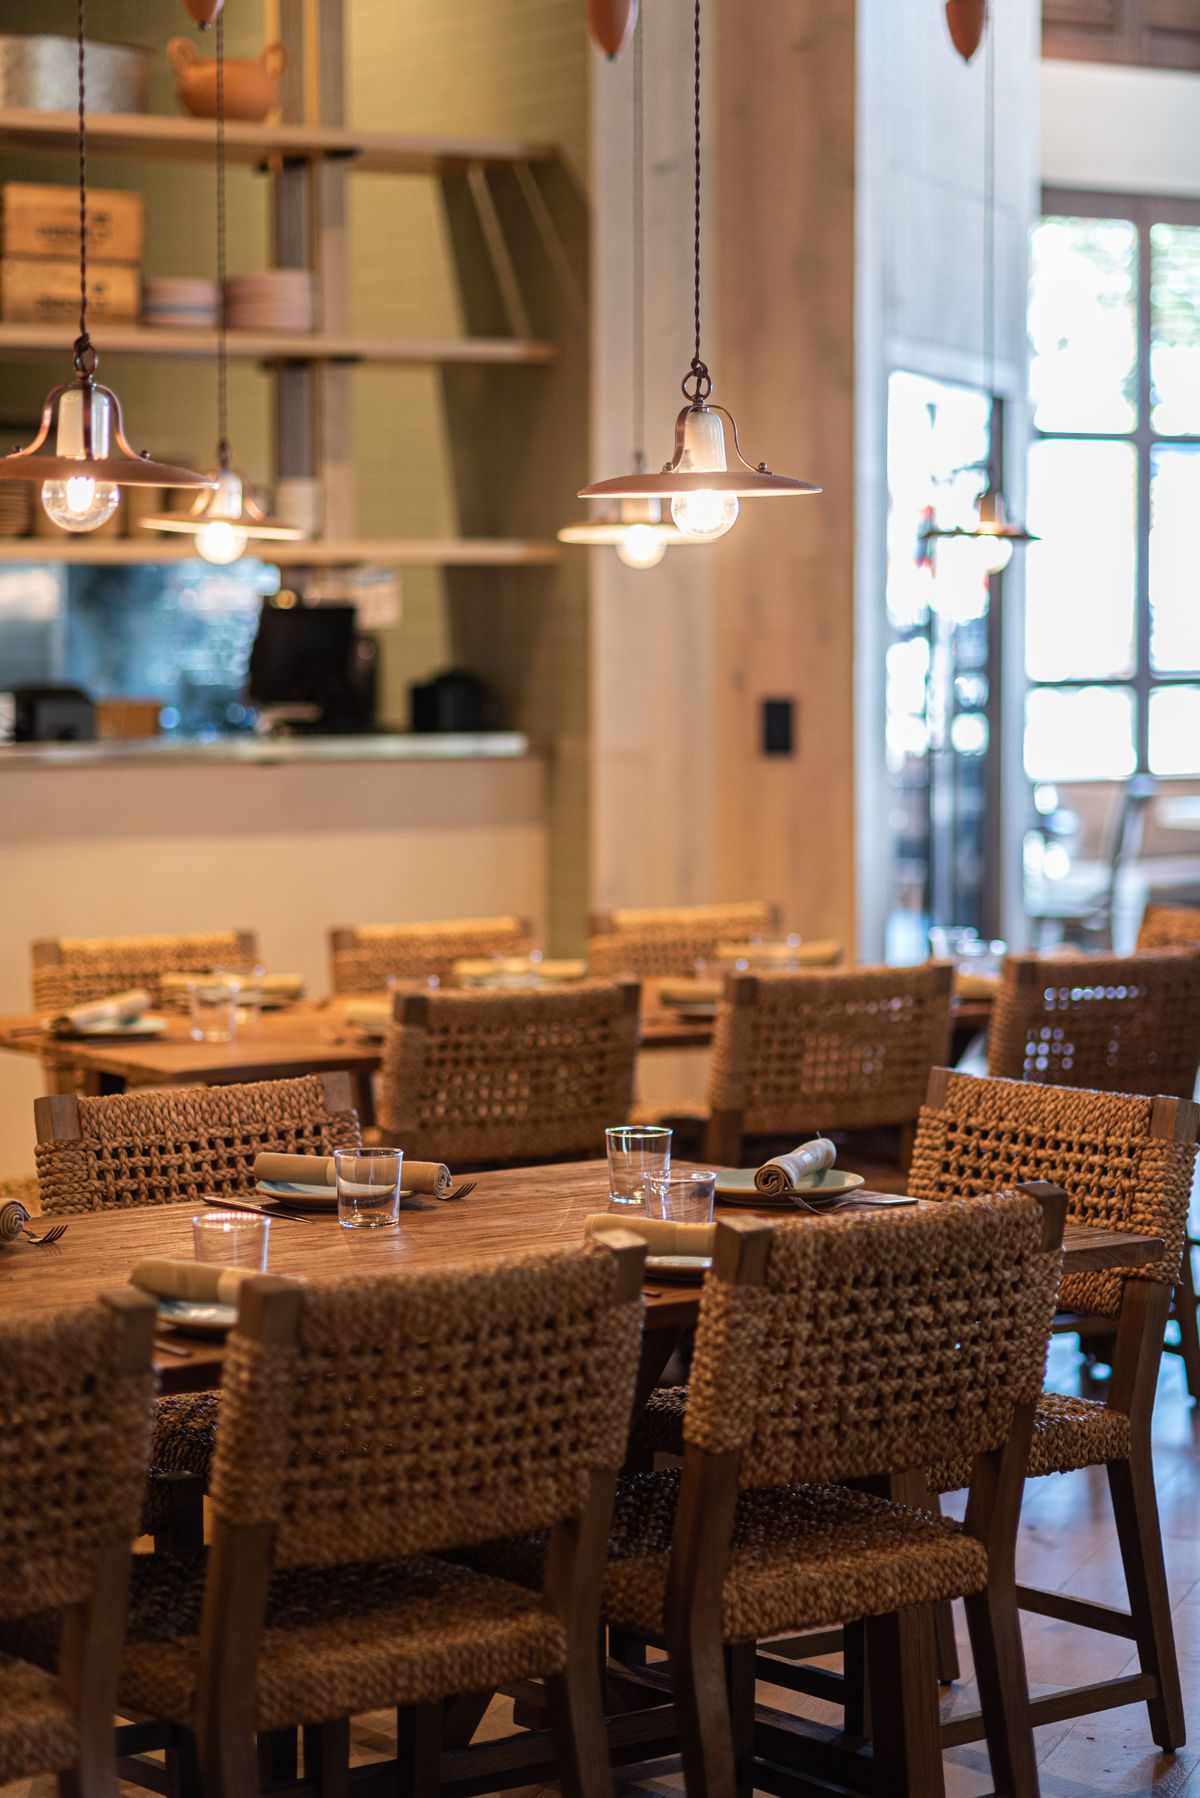 Wicker chairs inside a new restaurant with pendant lights.